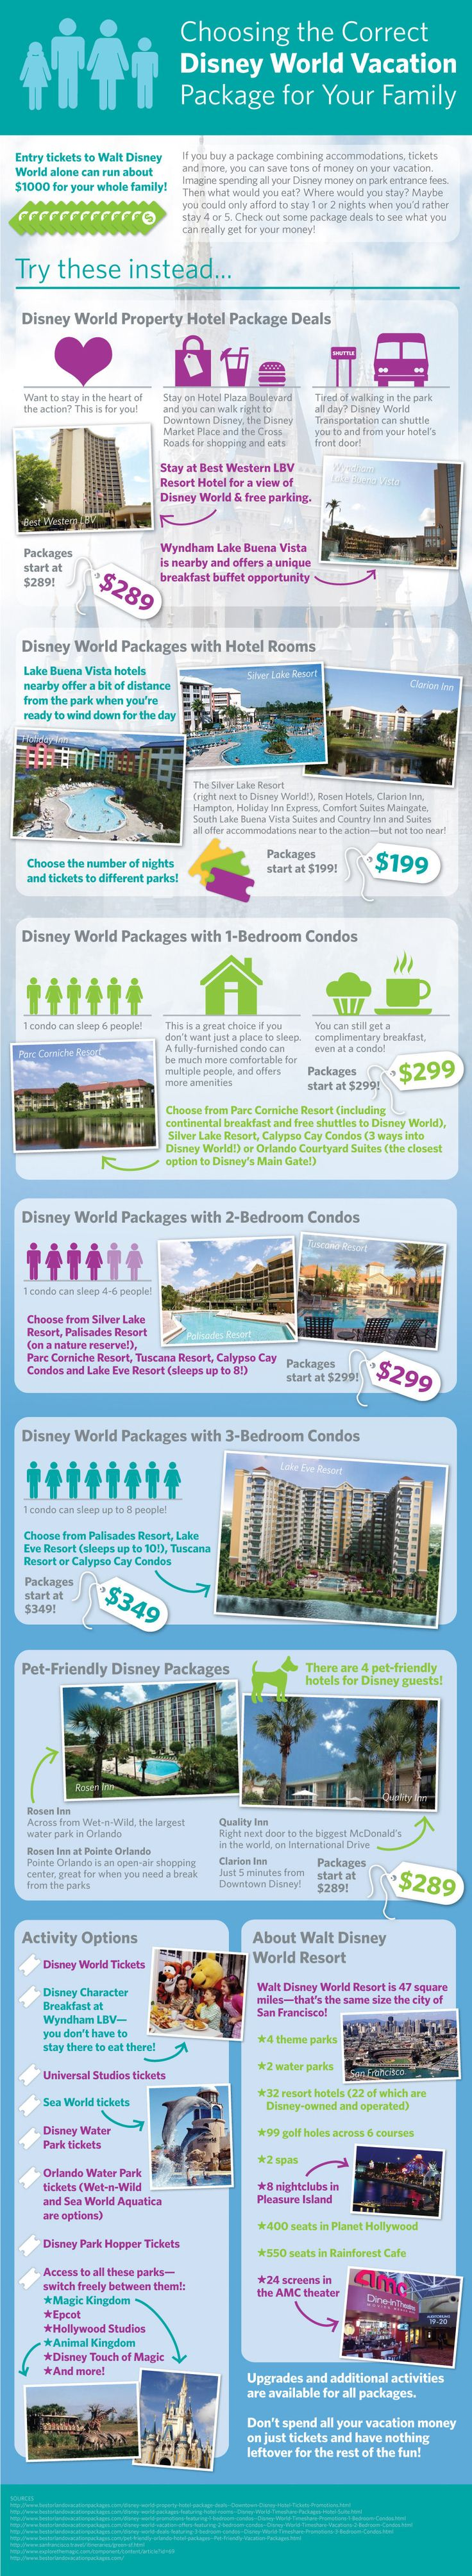 Great pricing on discount Disney World packages and vacations.  This is our Infographic.